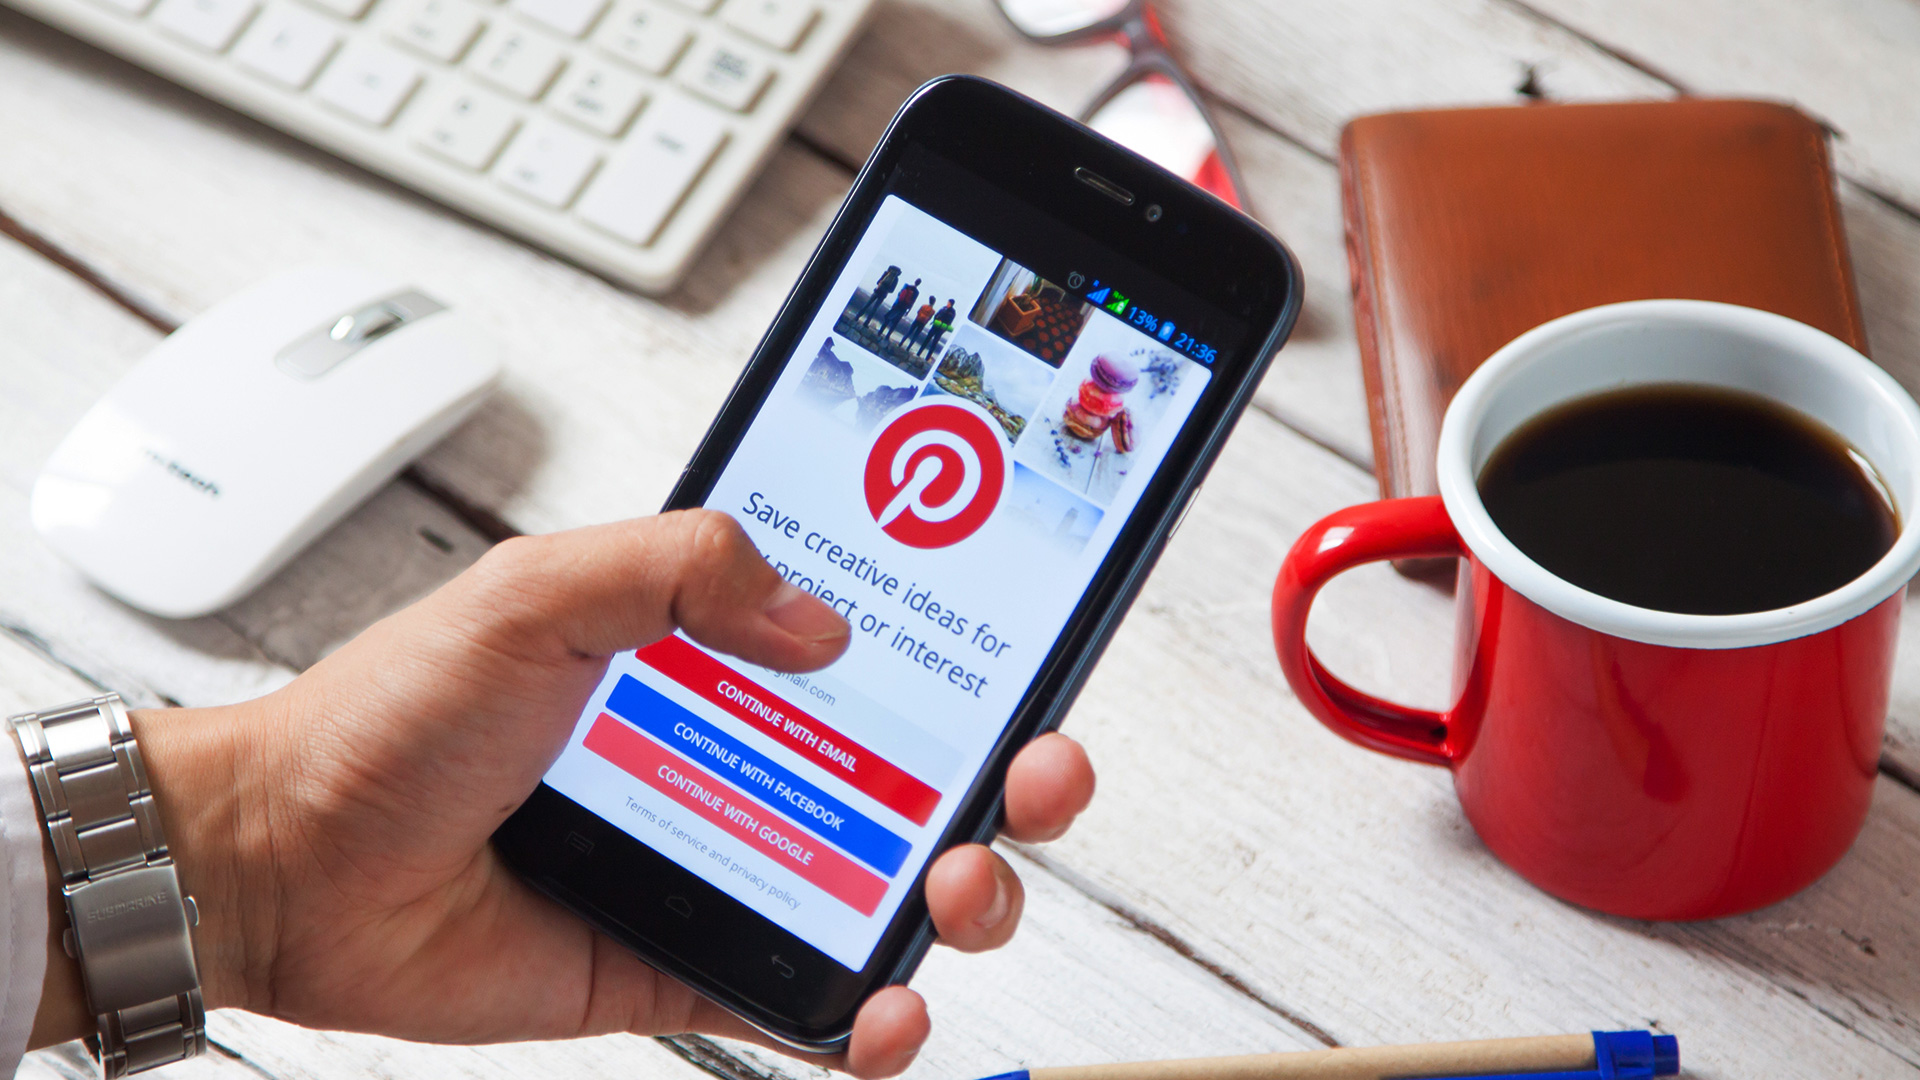 Pinterest's new Mobile Ad Tools let you create, manage campaigns from your phone